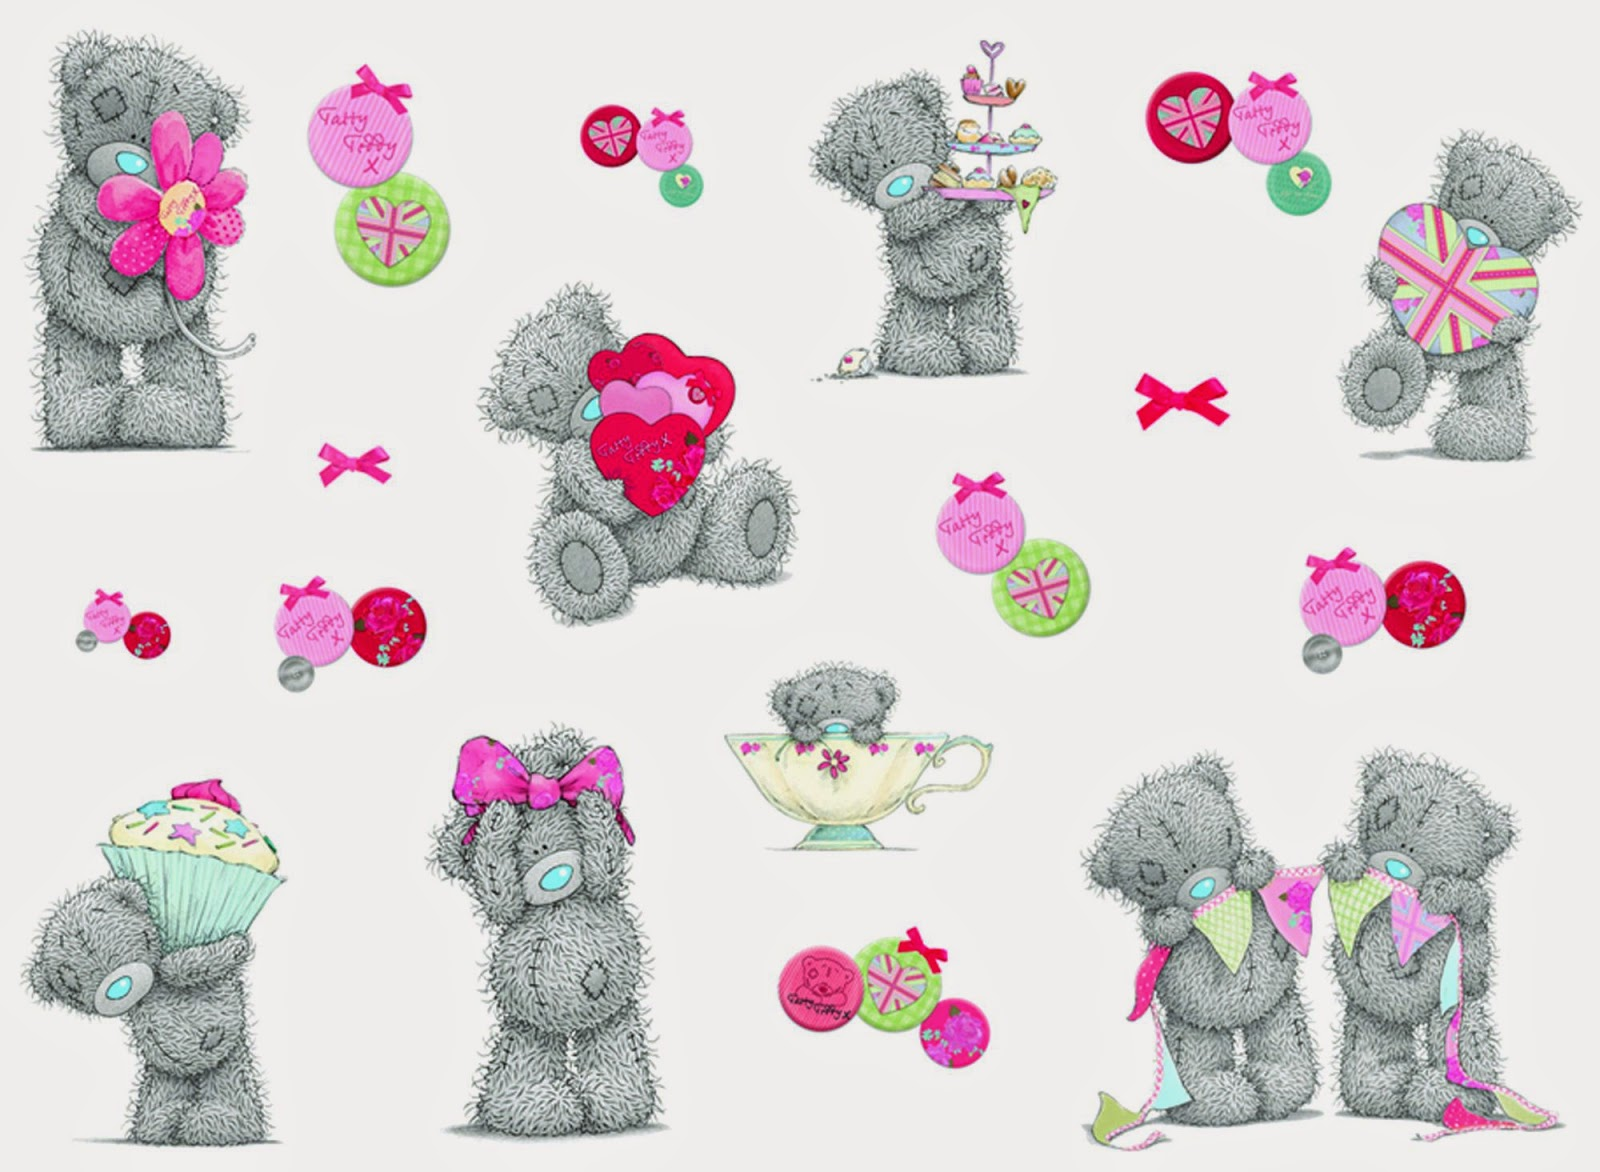 Teddy-bear-grey-white-images-for-kids-2000x1465.jpg